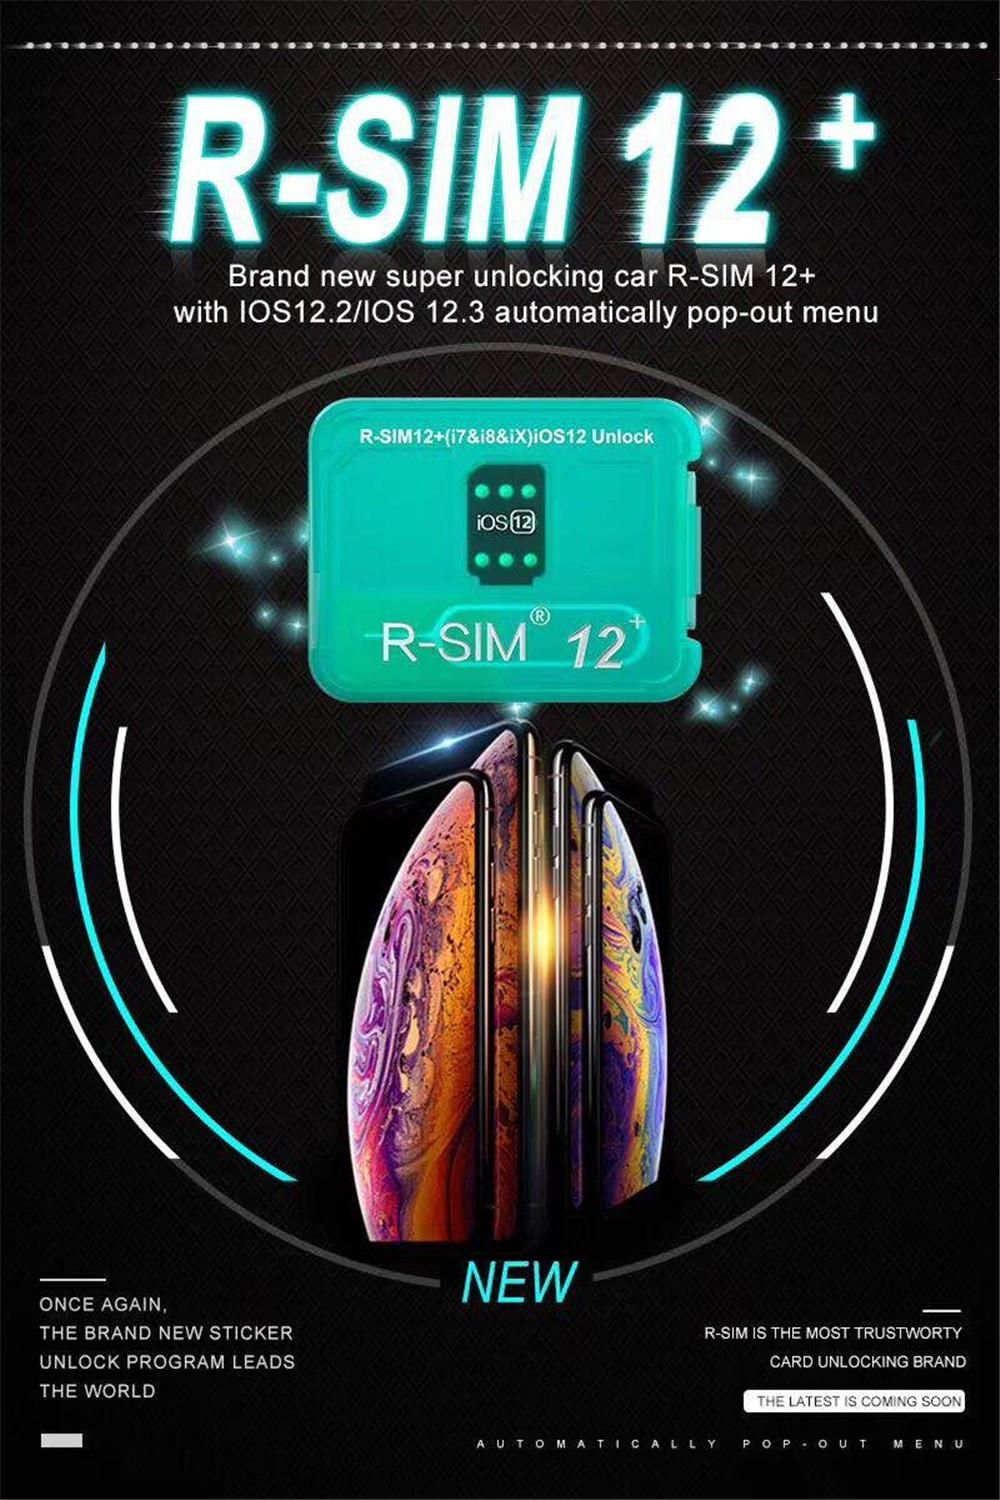 2019 R-Sim12+ RSIM12+ Unlock For Iphone XS X 8 7 Automatically Pop-Out Menu Unlocking For iOS 12.2-12.3 VS R-SIM 14